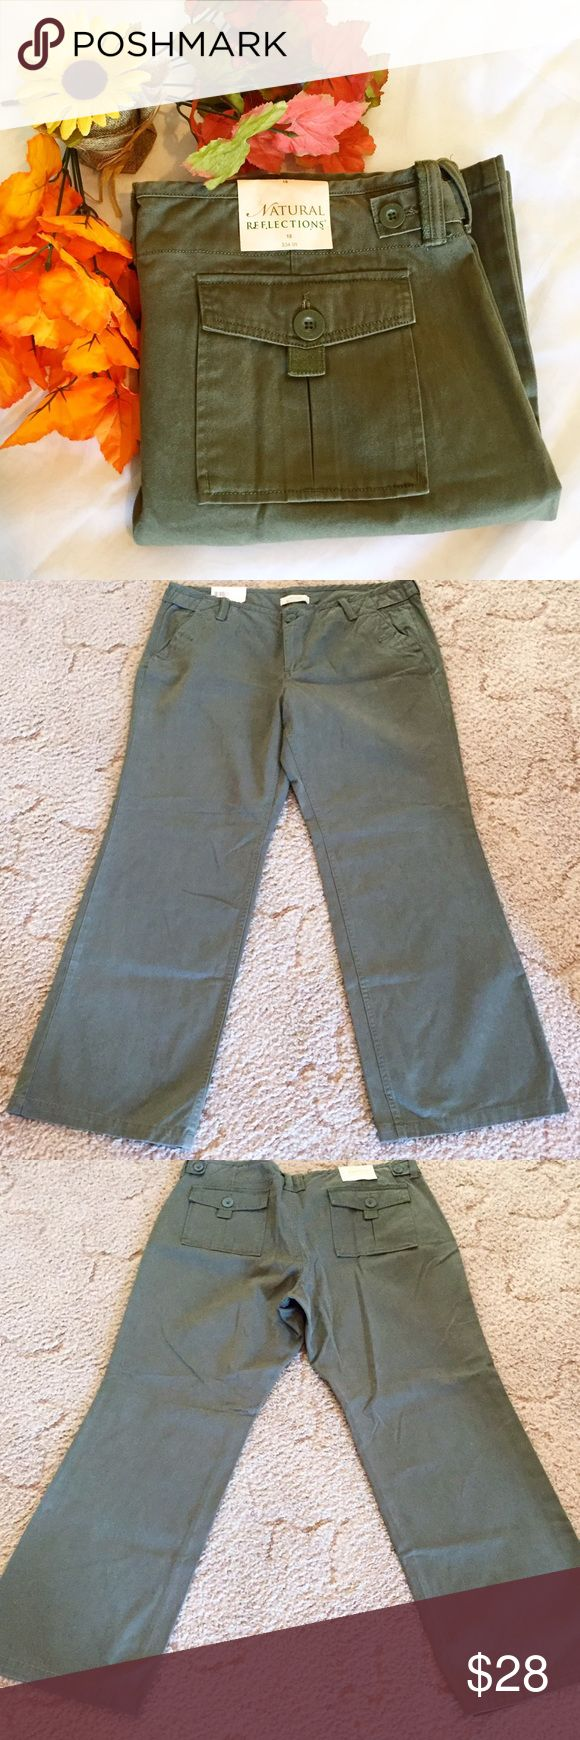 """🎉HP🎉NWT • Olive Green Plus Size Khakis NWT • Natural Reflections • Olive Green Plus Size Khaki Pants • Size 18 • 19.5"""" waistline • 10.5"""" rise • 31.5"""" inseam • 40.5"""" waistline to pants leg hemline • 100% Cotton • Very Little Stretch to fabric. Reasonable offers considered. 🚫trades/offline transactions. 🛍Bundle to save 10% • 3+ listings. Thank you🌷 Natural Reflections Pants Straight Leg"""